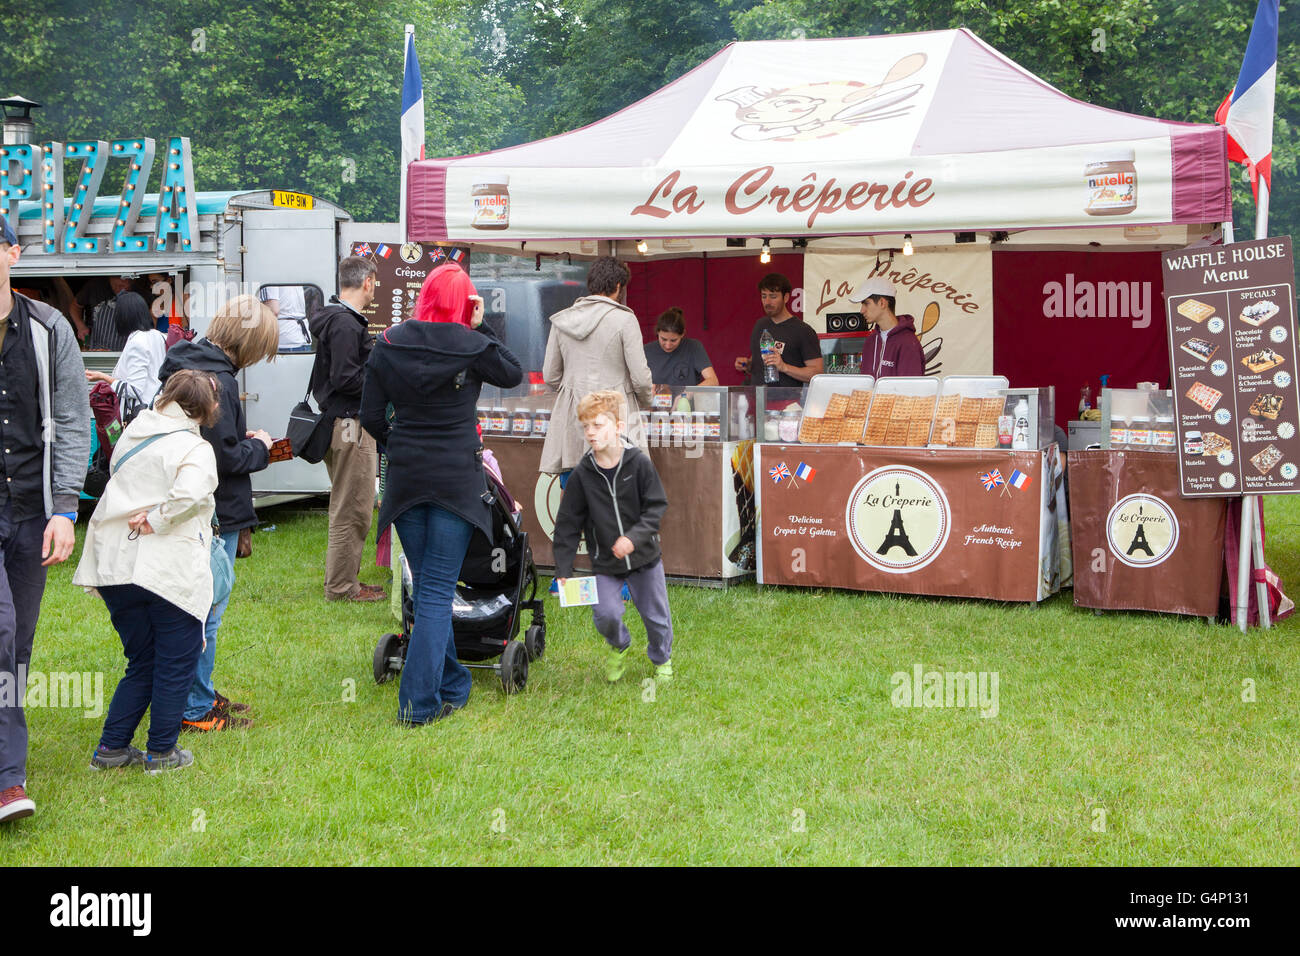 La  Creperie & waffle house,  Food stall vans at the Africa Oye festival in Sefton Park, Liverpool, Merseyside, - Stock Image